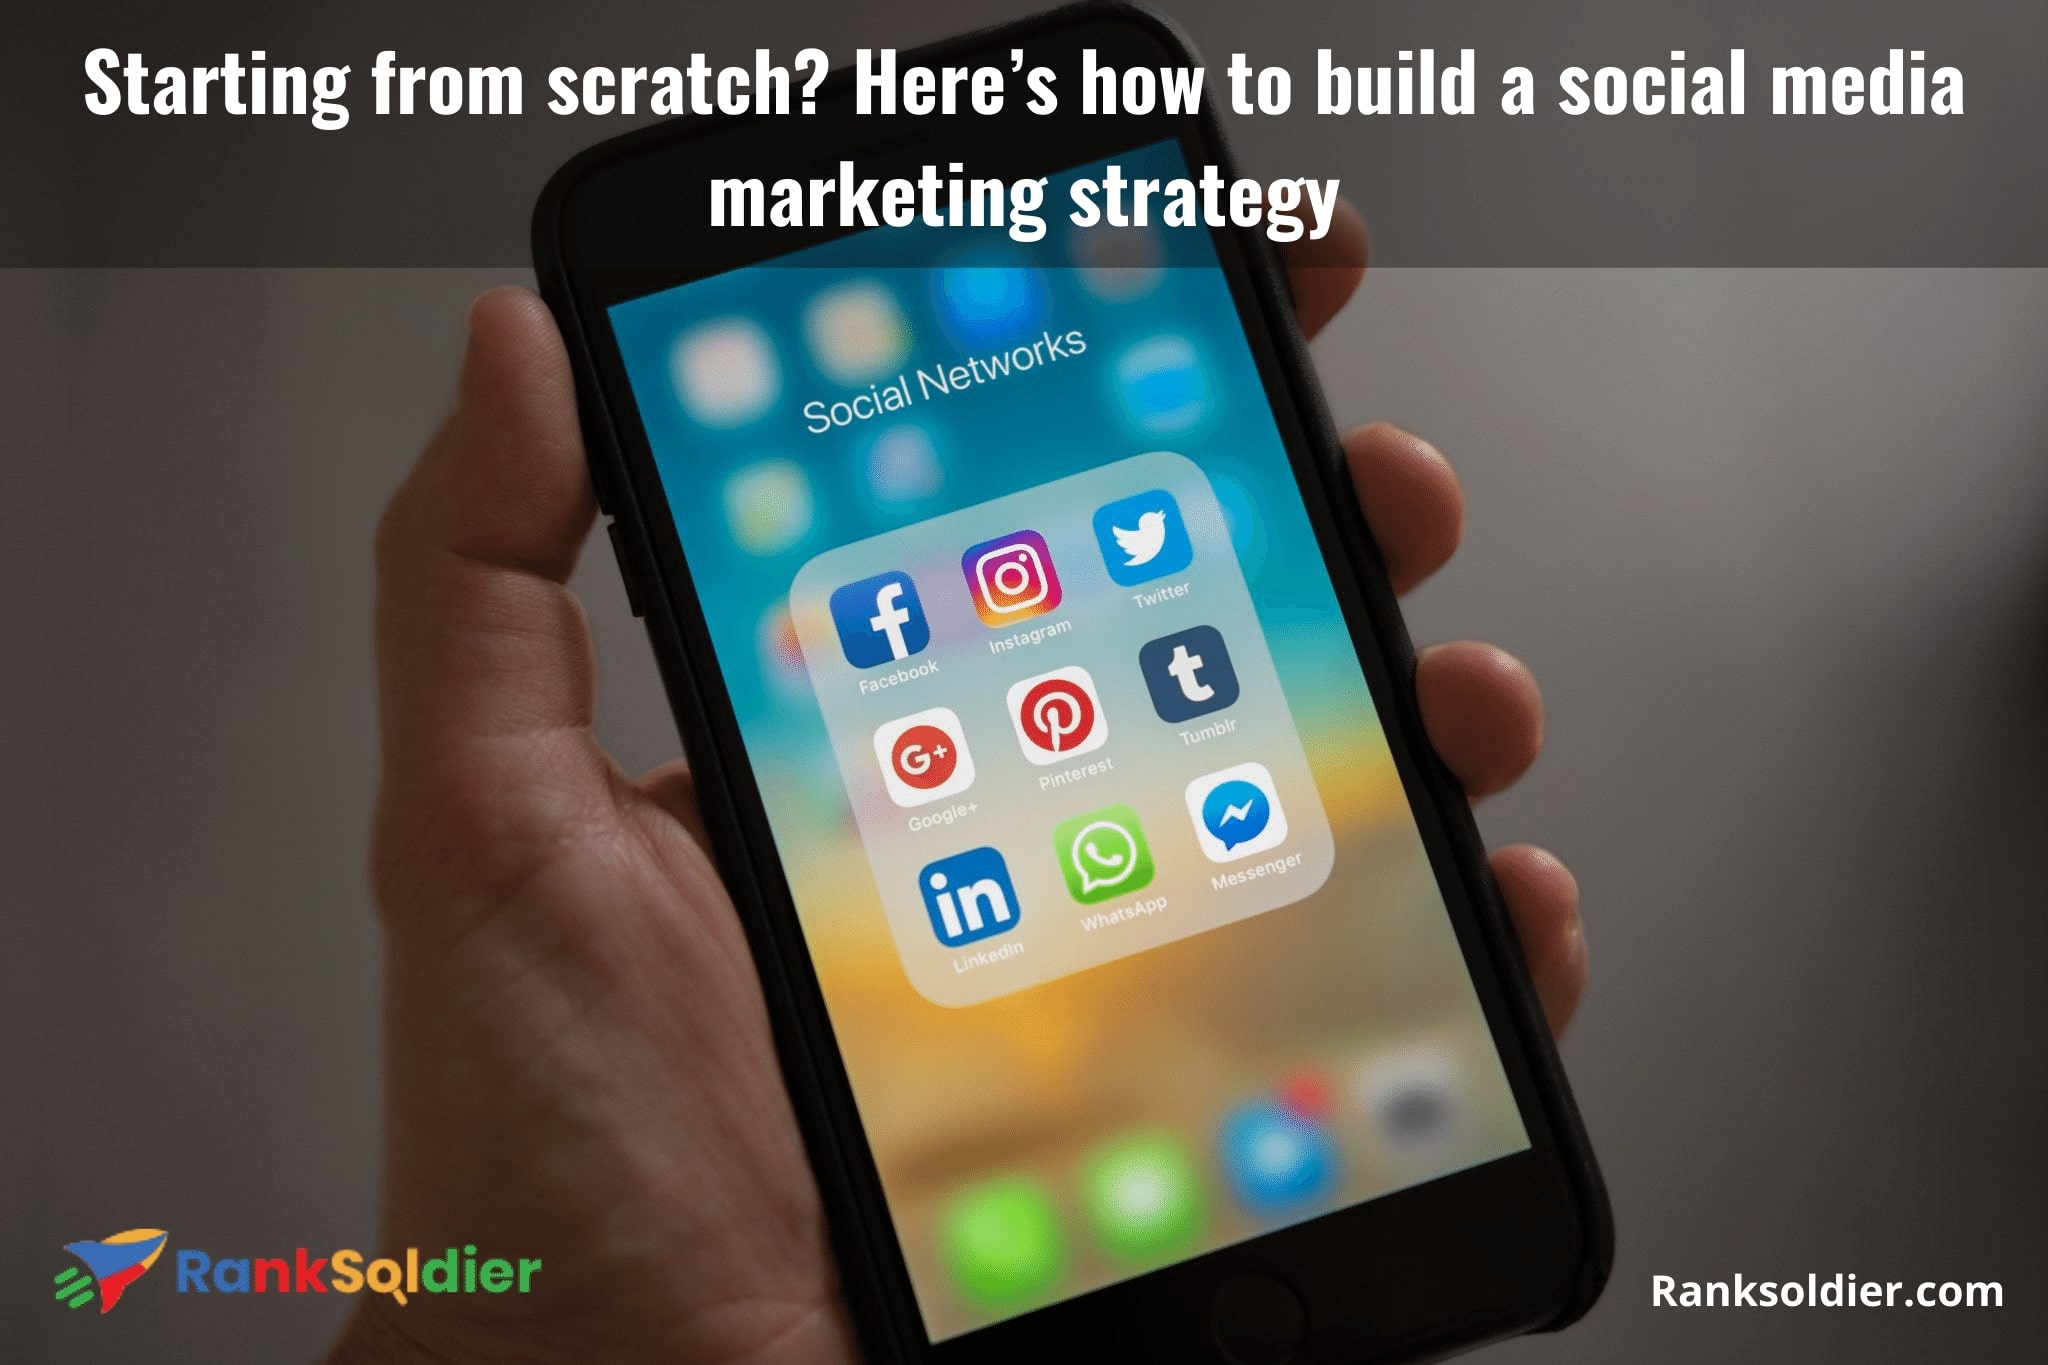 Starting from scratch_ Here's how to build a social media marketing strategy